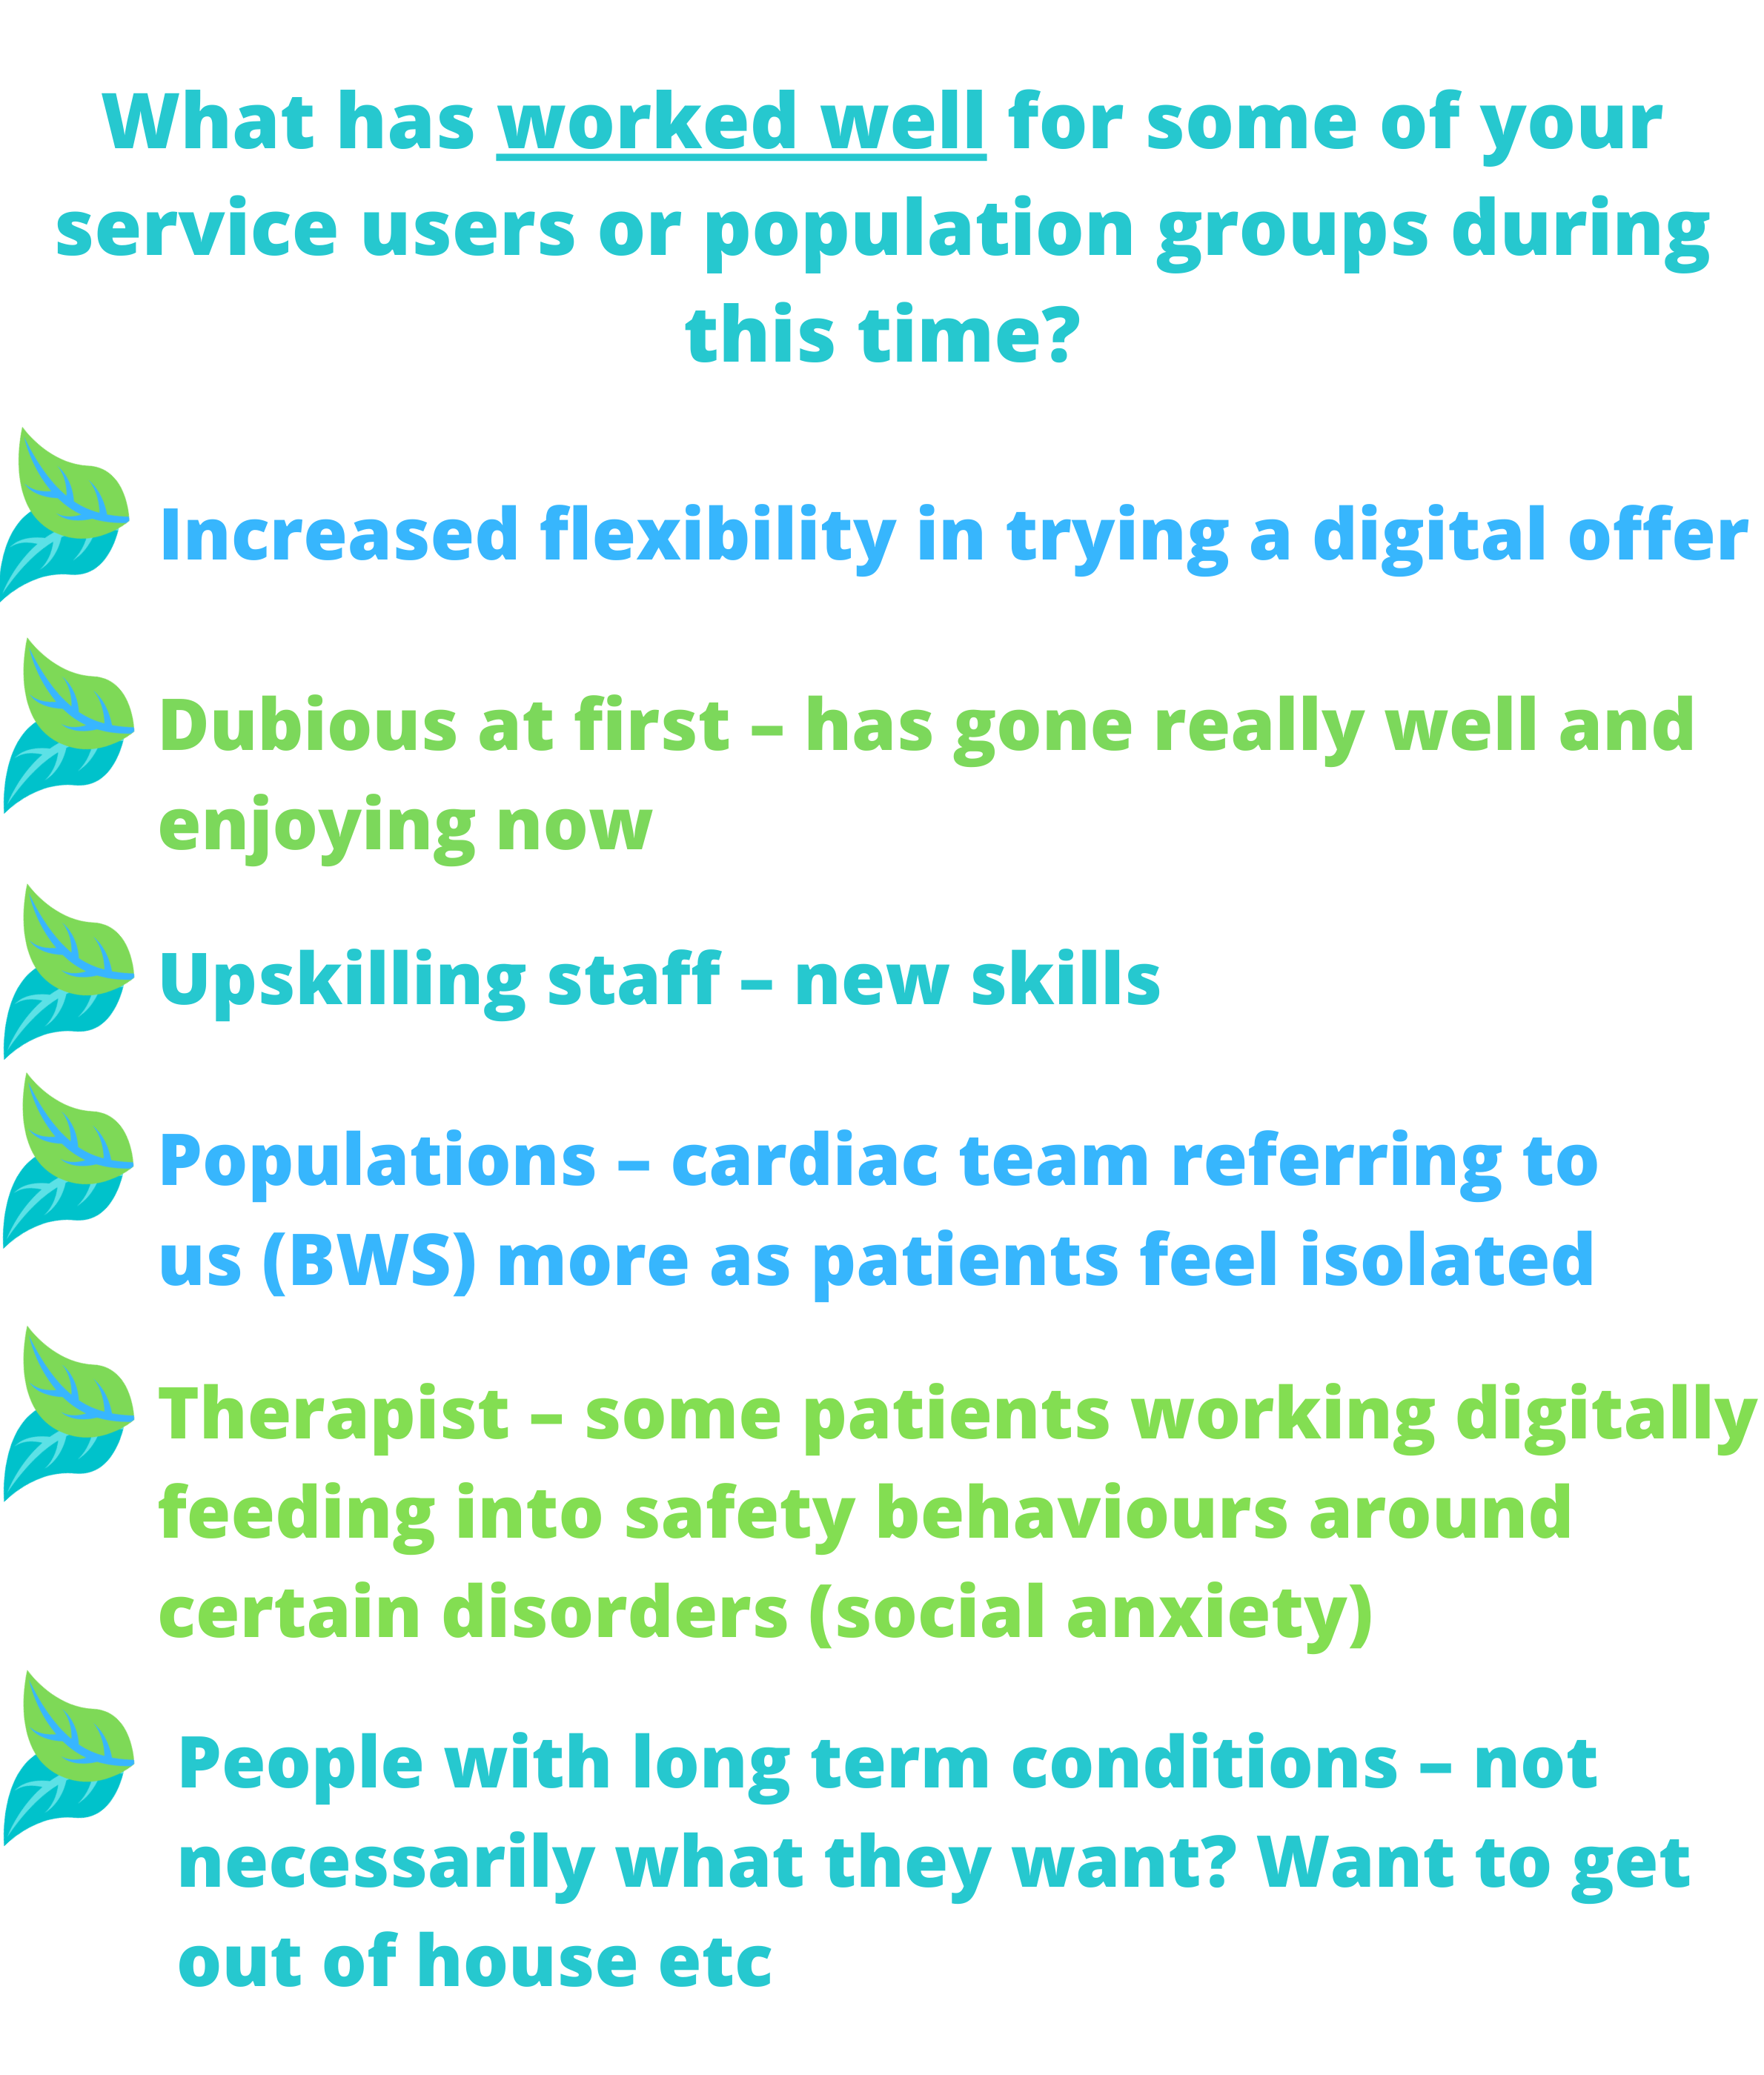 What has worked well for some of your service users or population groups during this time?